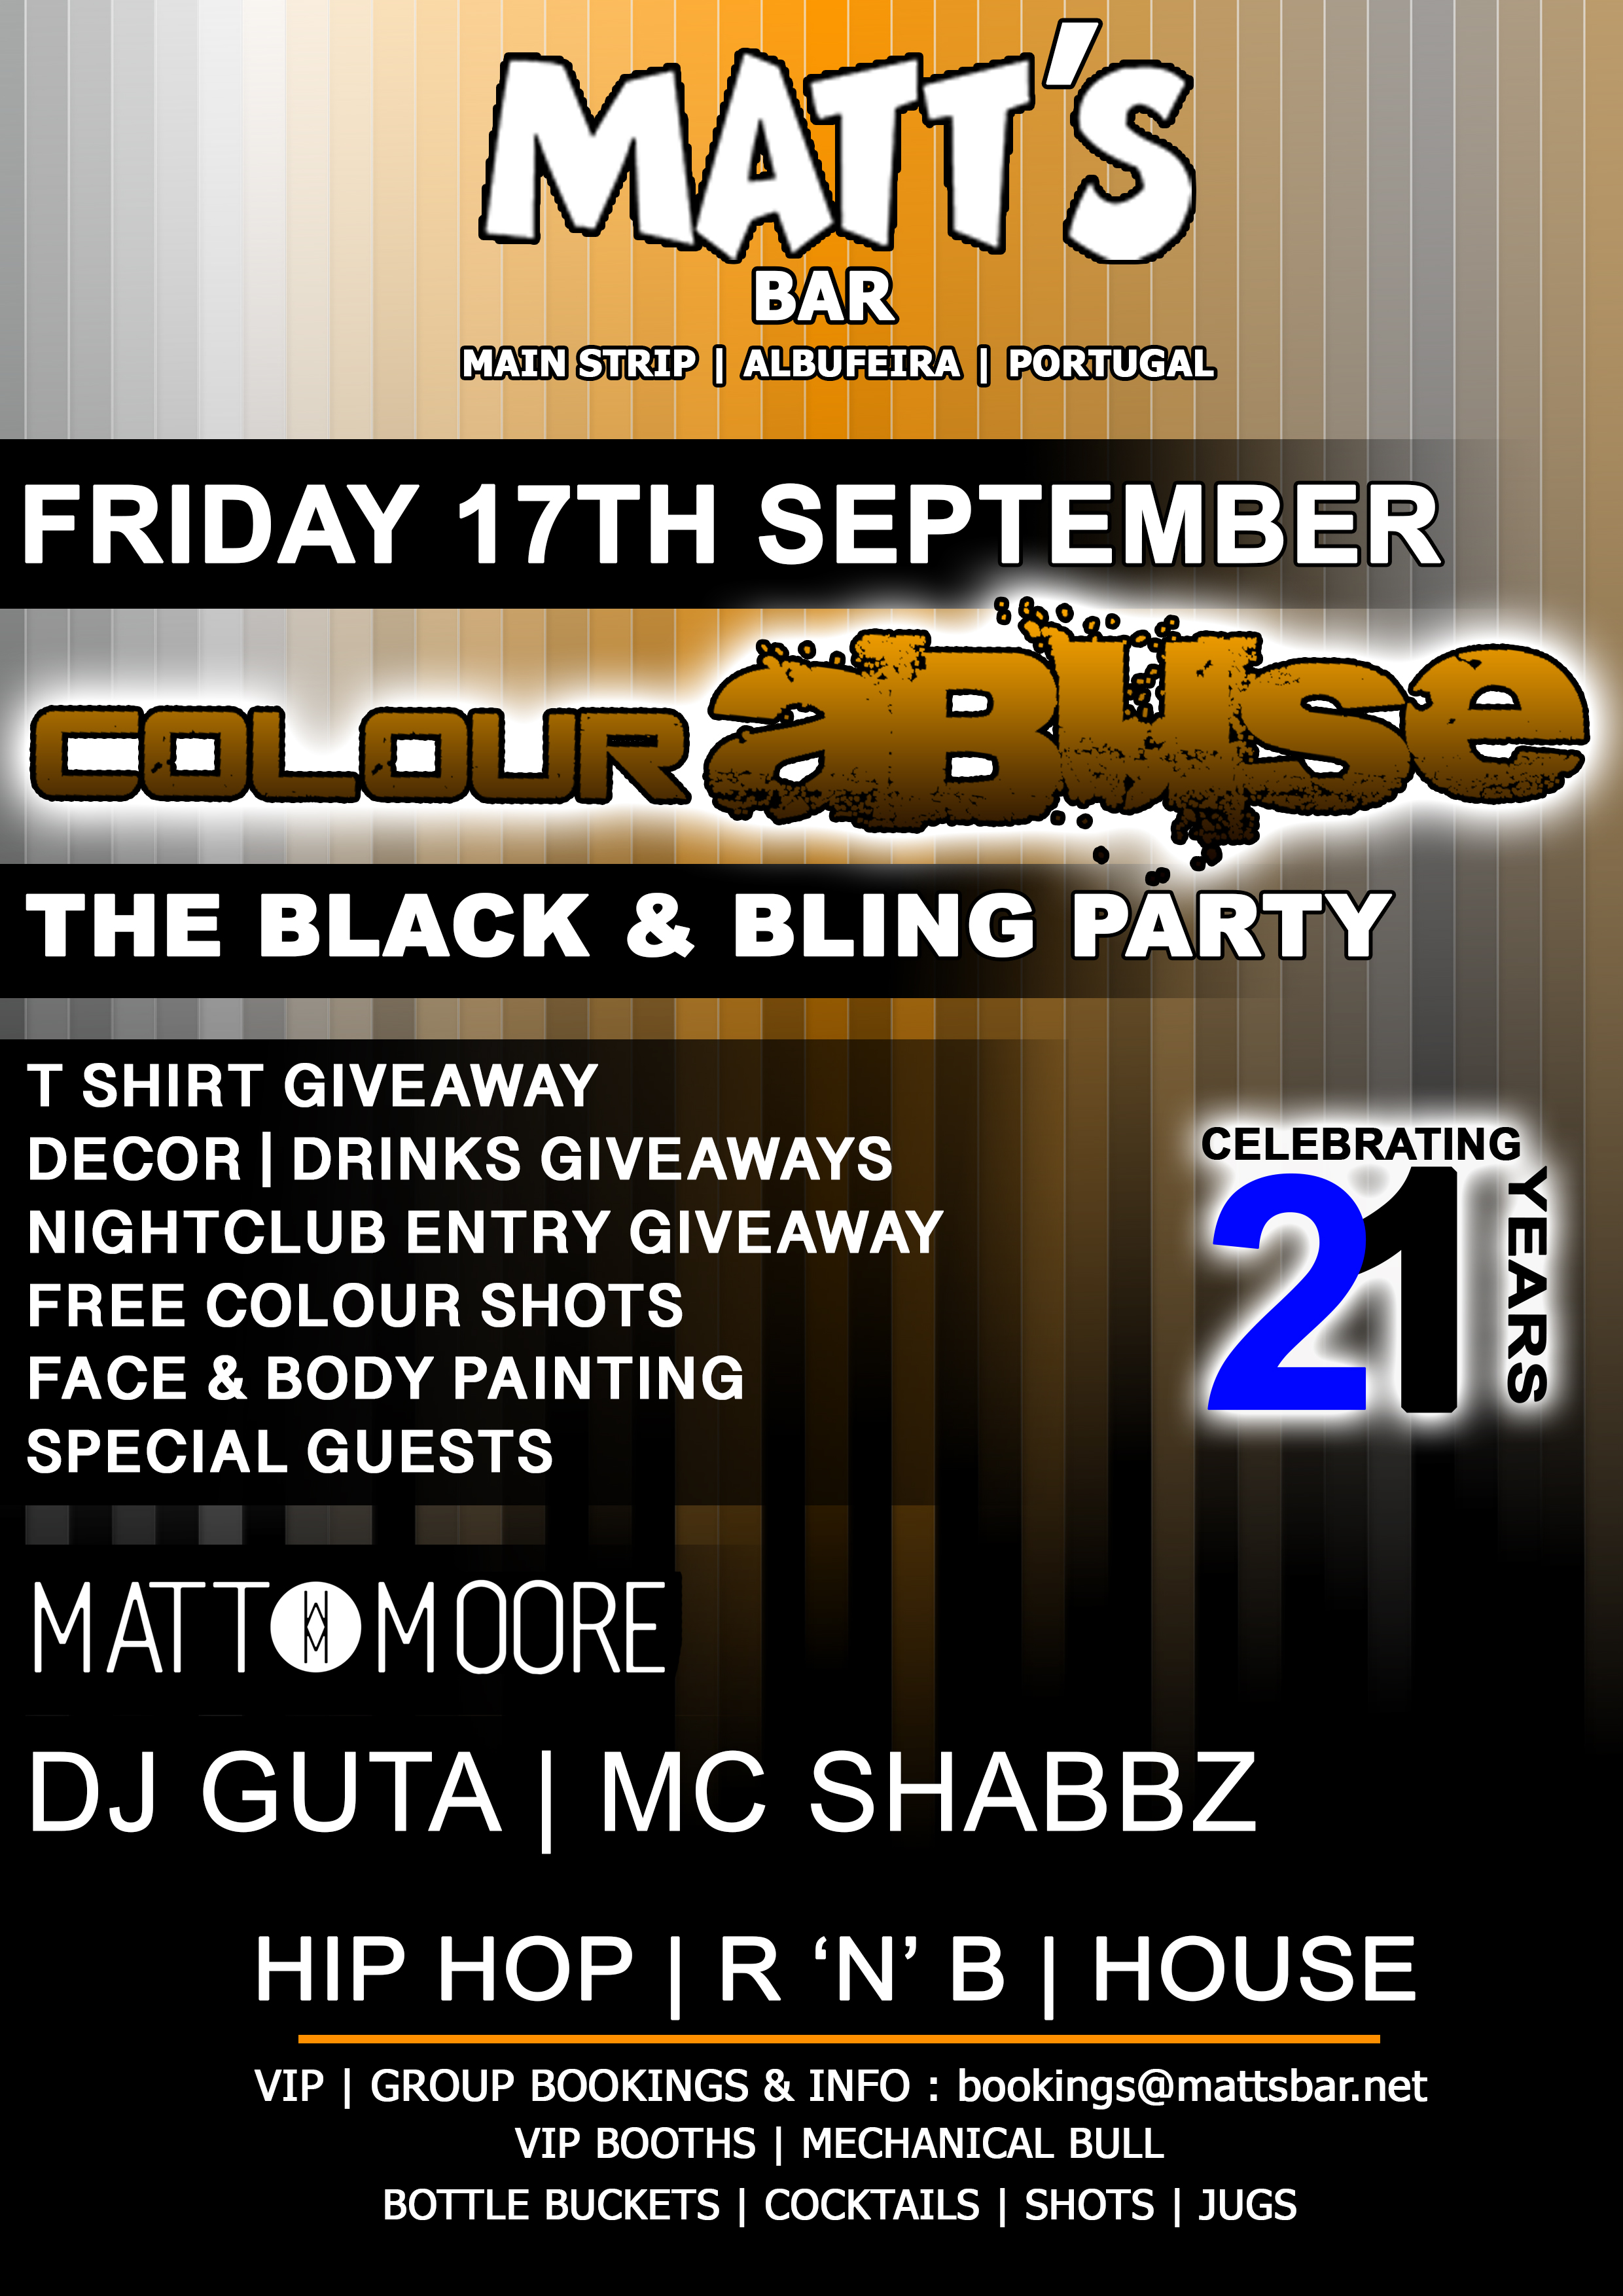 THE BLACK AND BLING PARTY